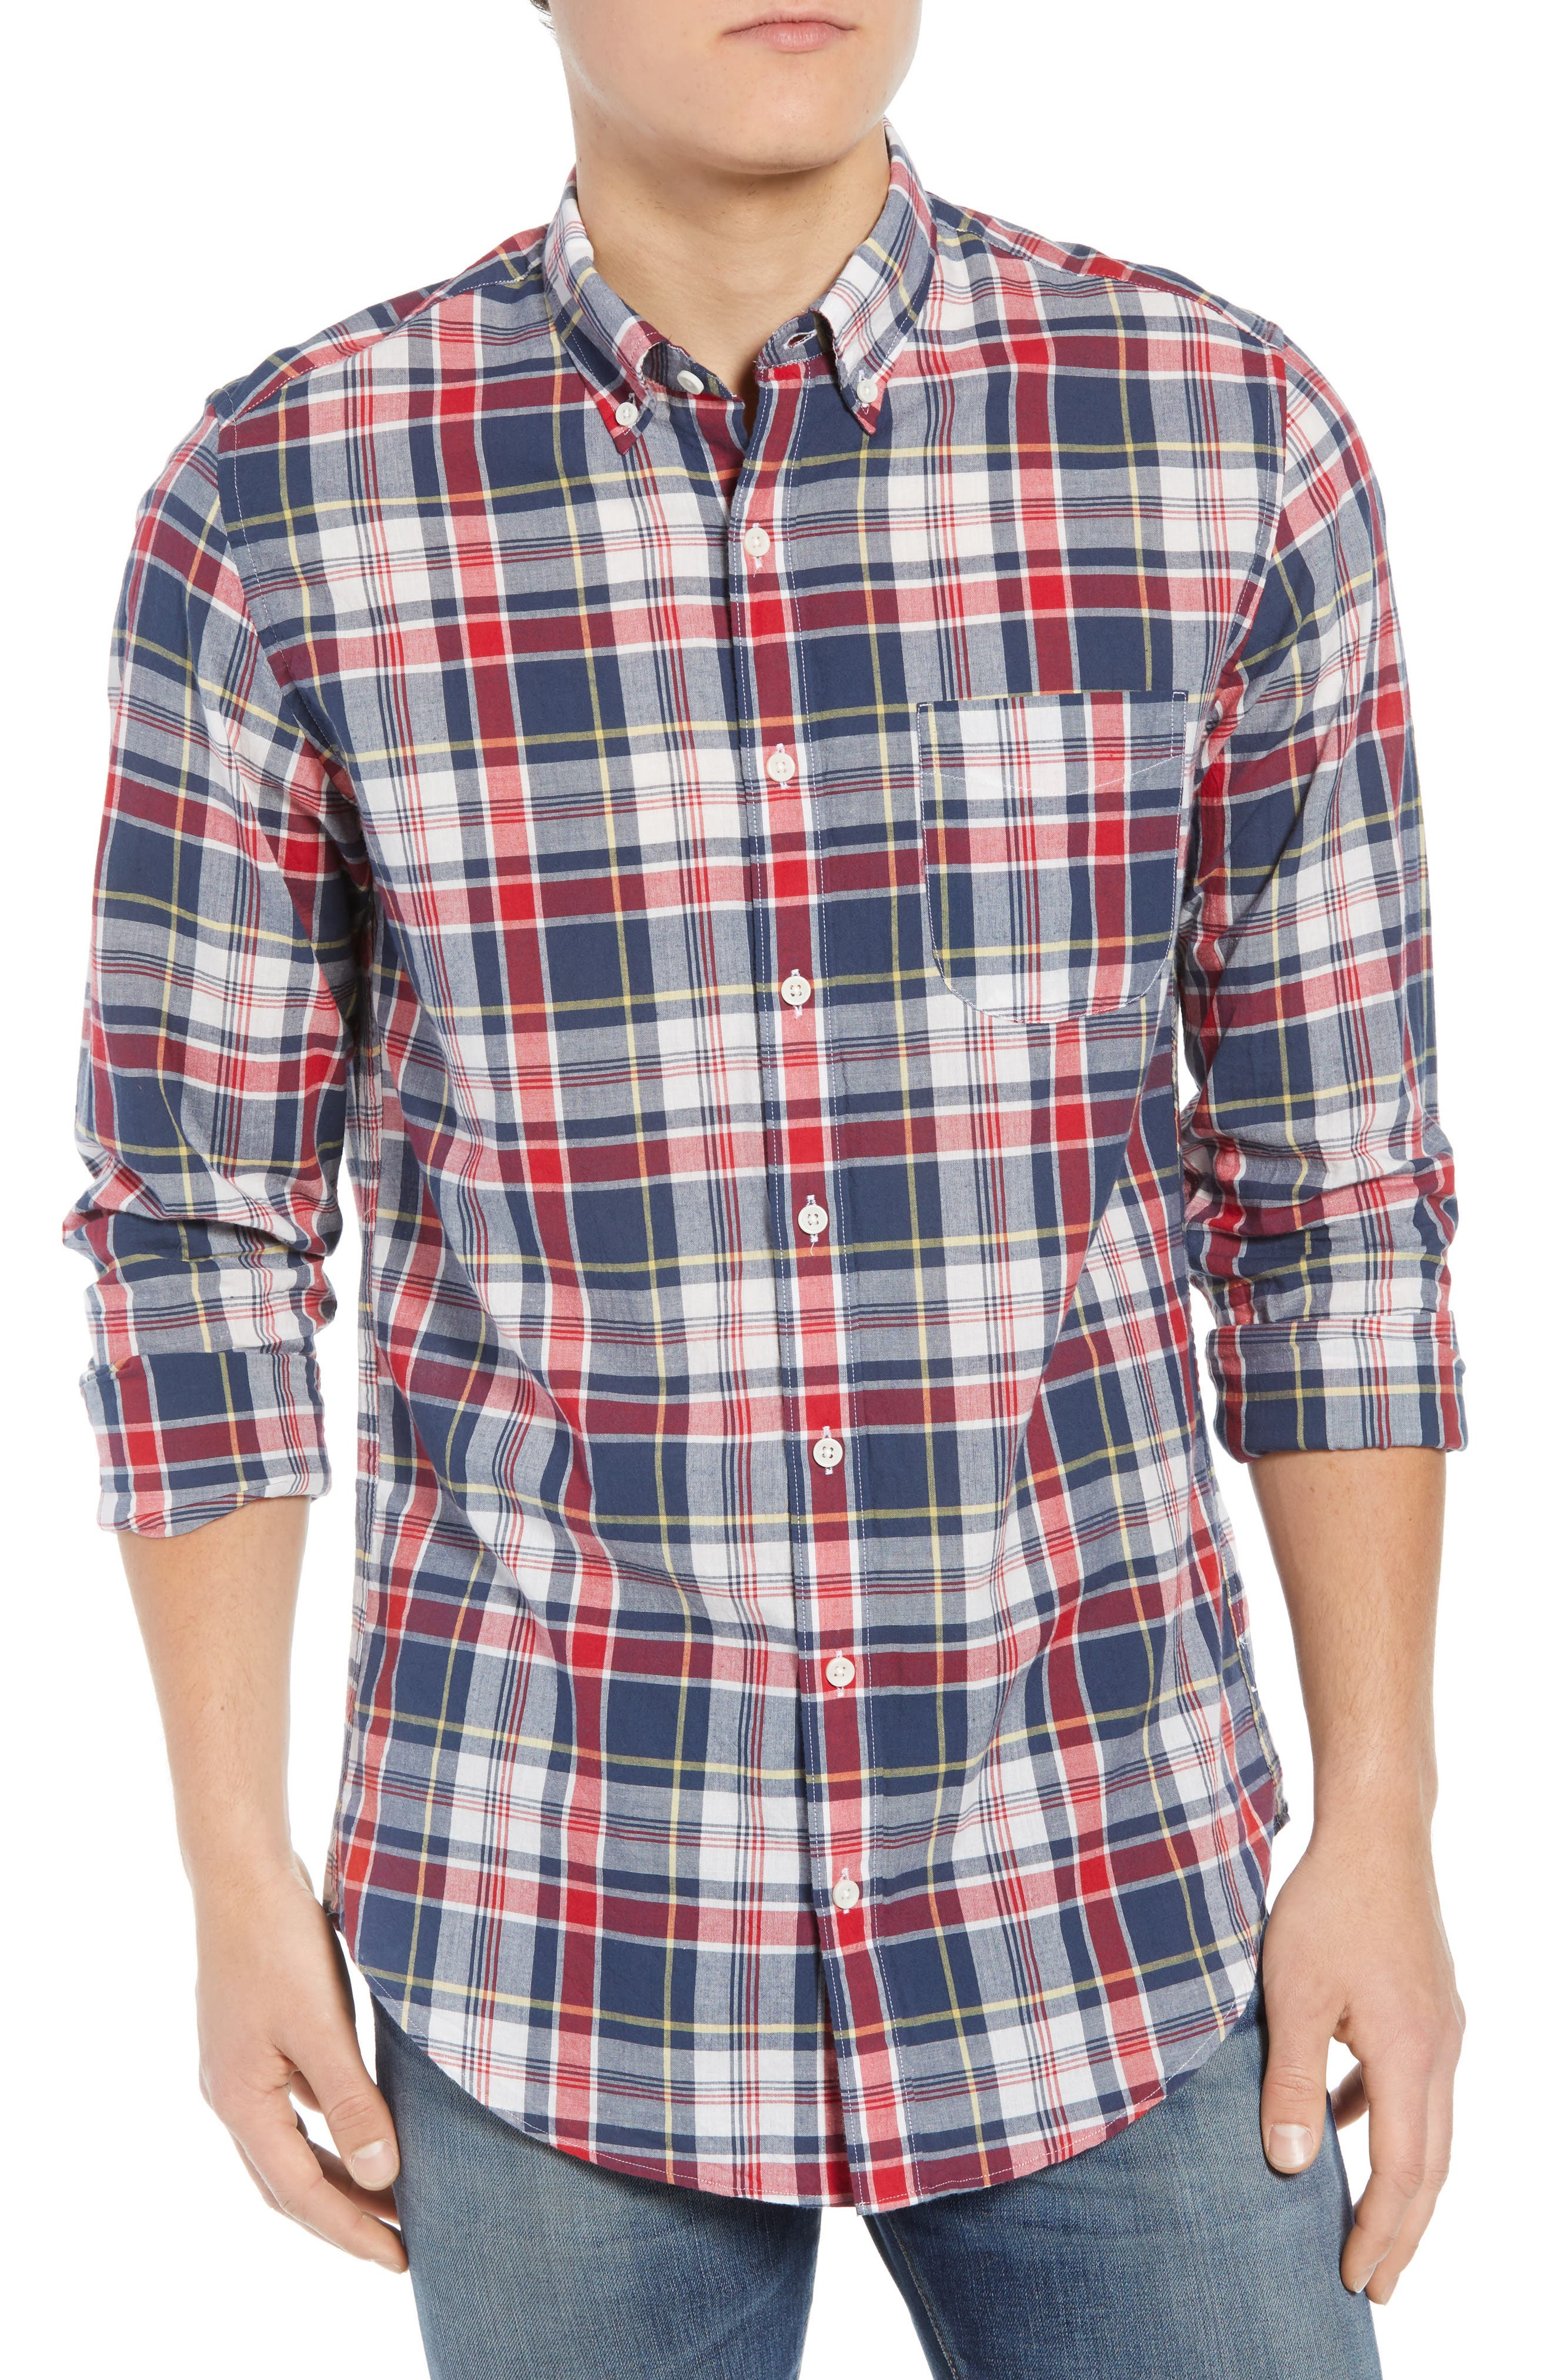 Regular Fit Madras Plaid Sport Shirt,                             Main thumbnail 1, color,                             Navy Ink